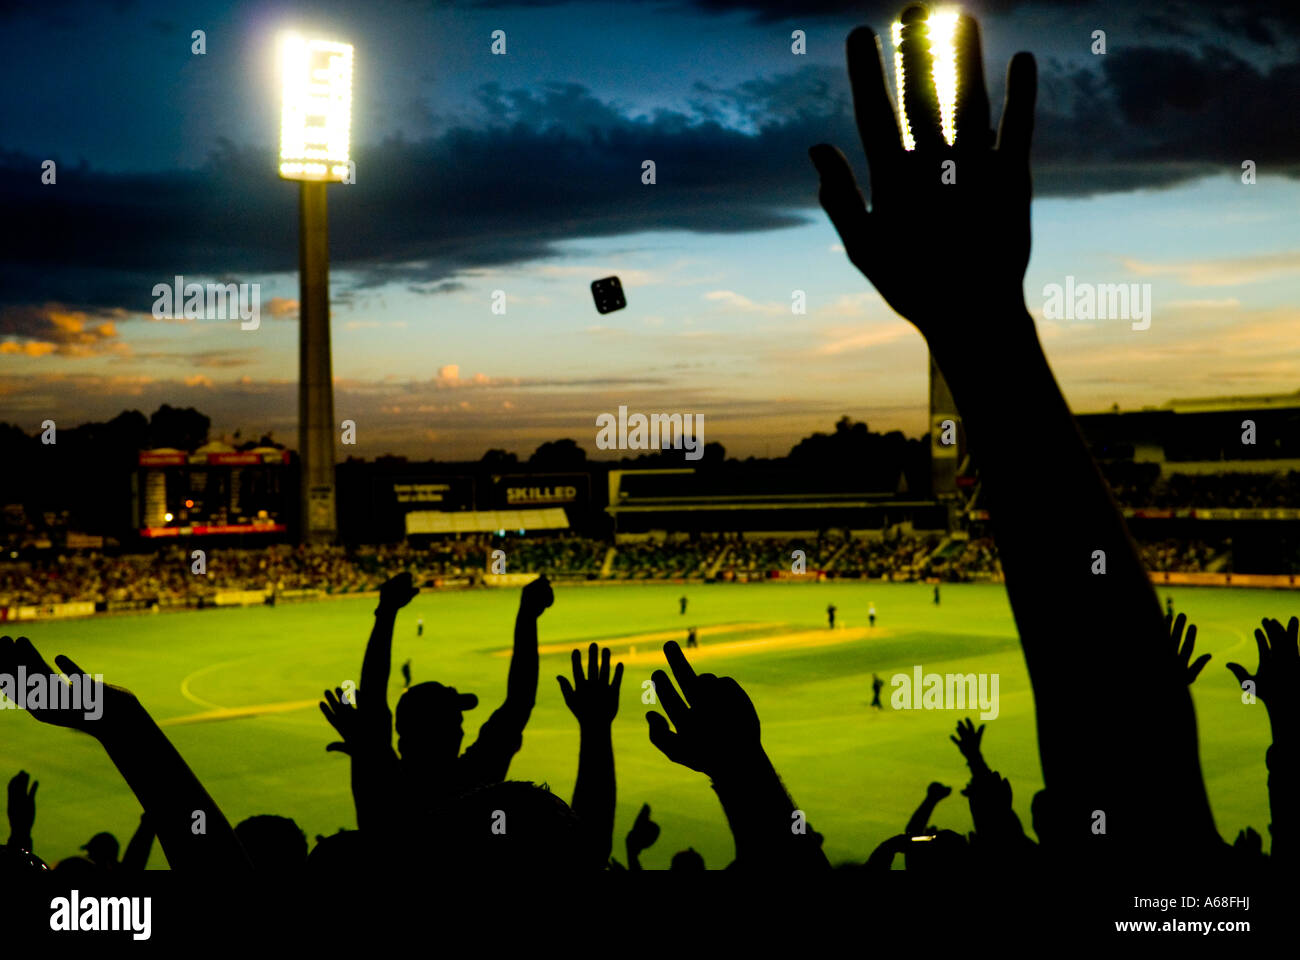 Fans doing Mexican Wave at night cricket match, Perth, Western Australia - Stock Image